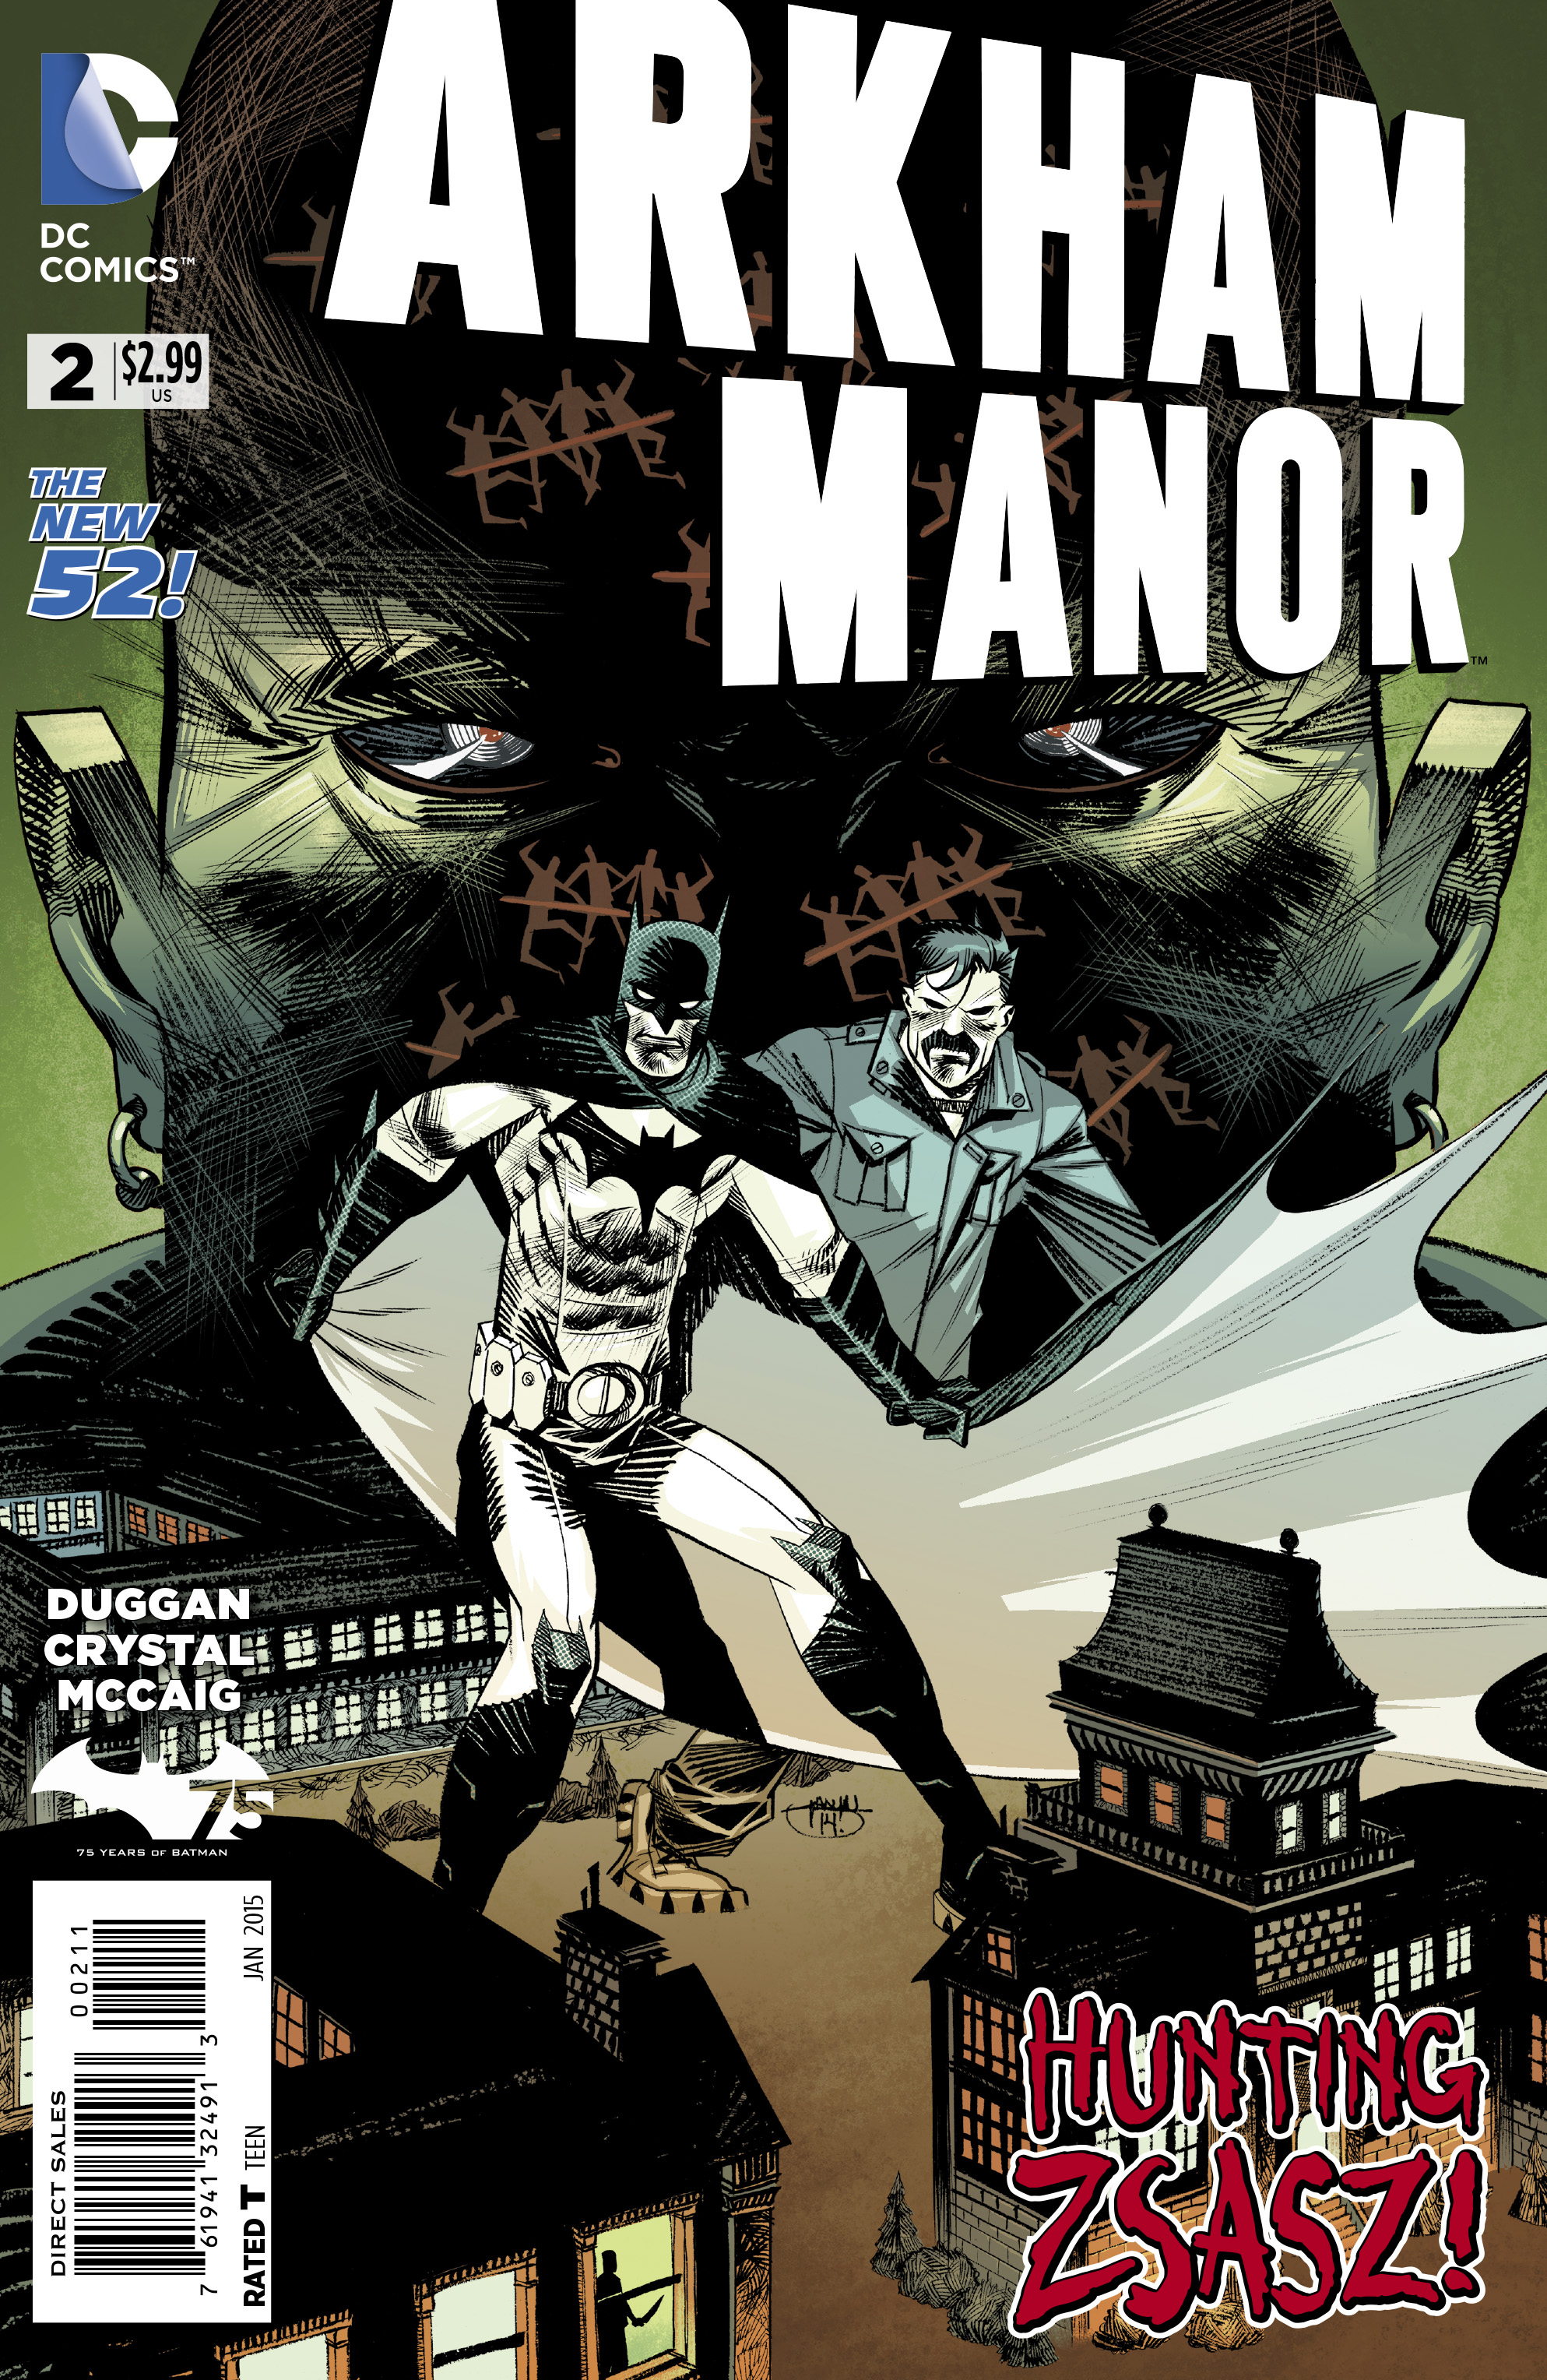 ARKHAM MANOR #2